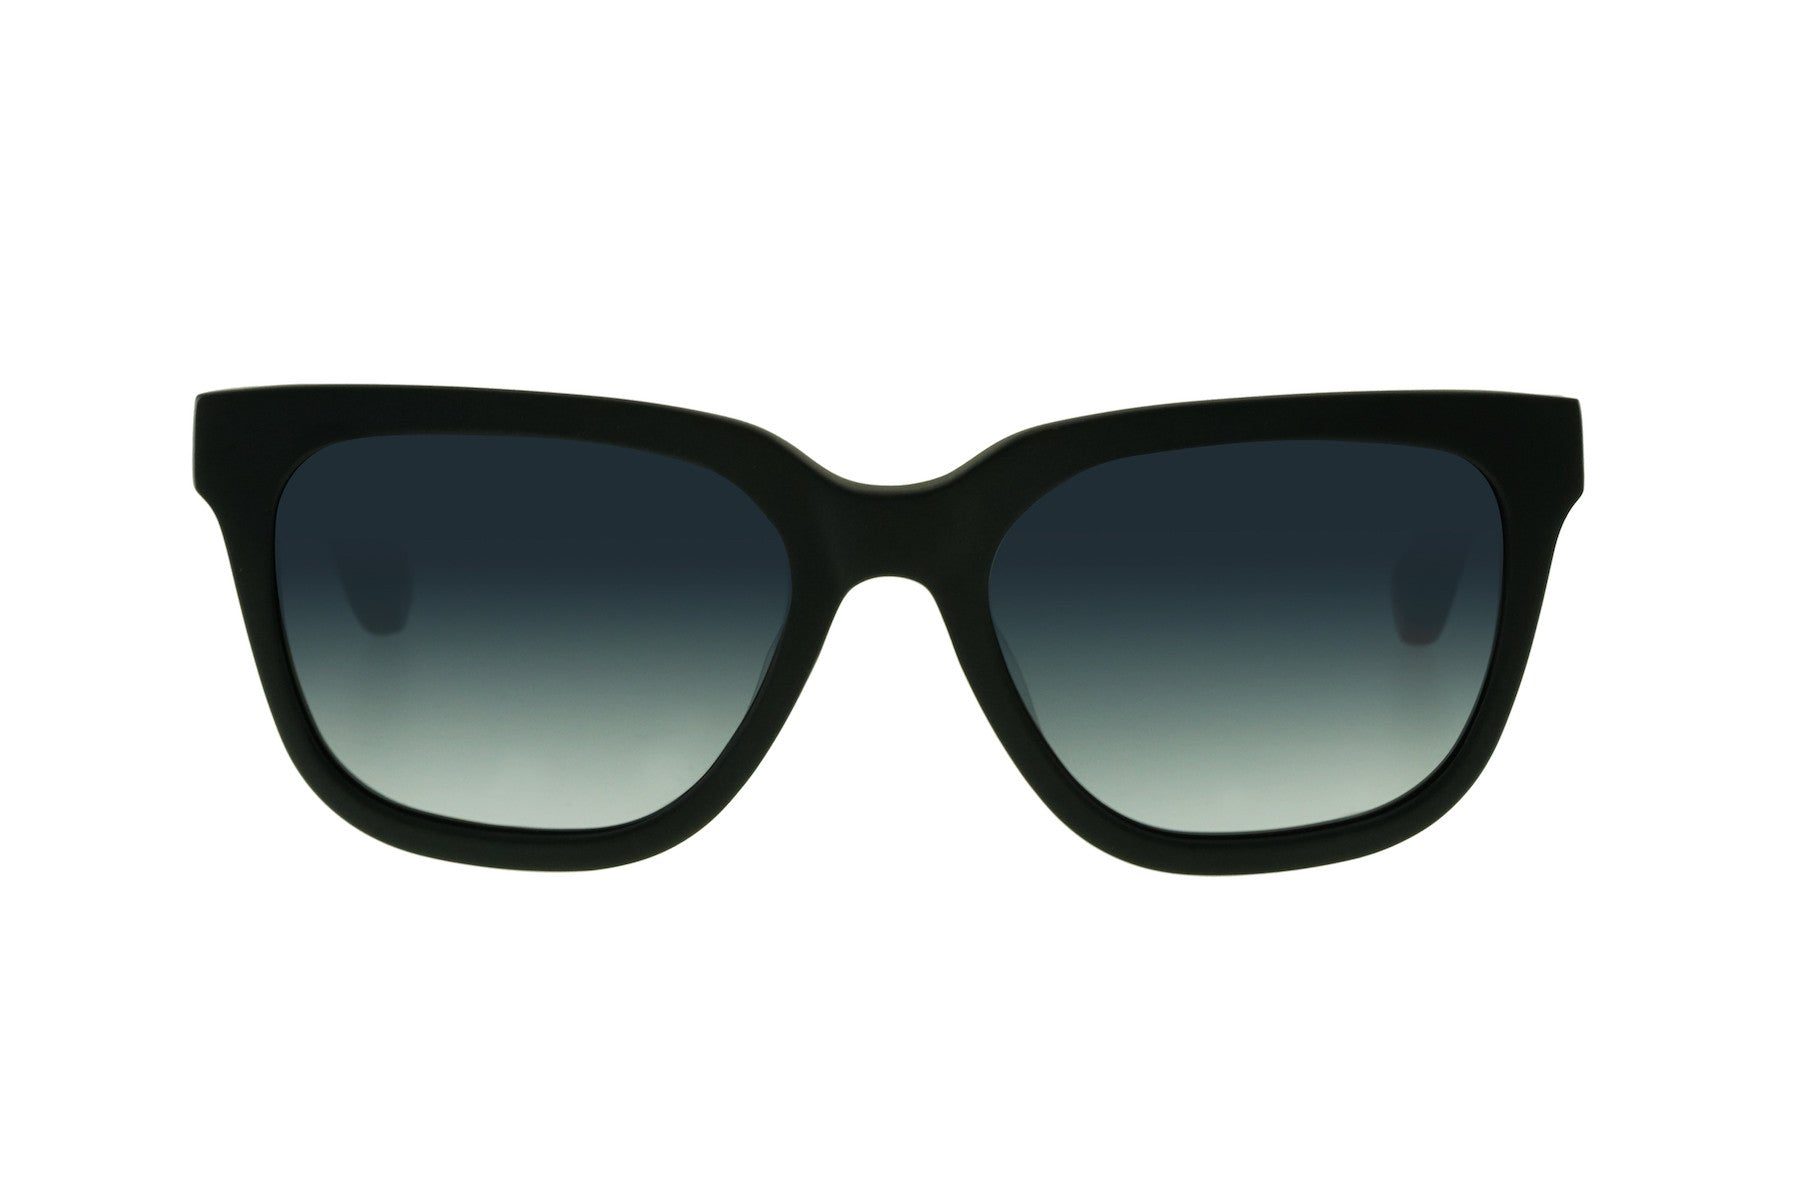 La Cienega II 929 - Peppertint - Designer sunglasses